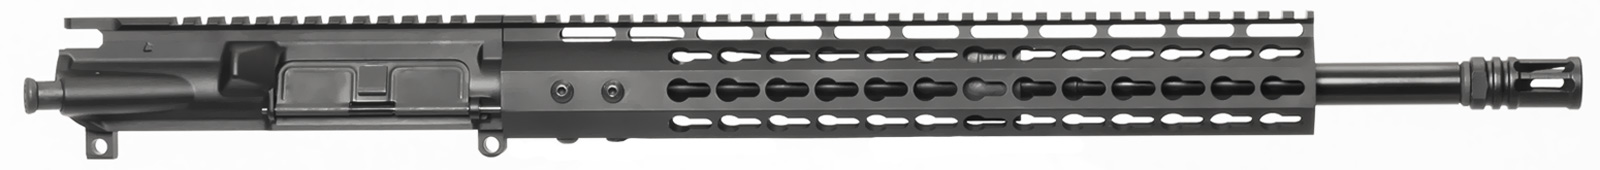 ar-15-upper-assembly-16-5-56-x-45-1-8-13-cbc-arms-keymod-gen-2-ar-15-handguard-rail